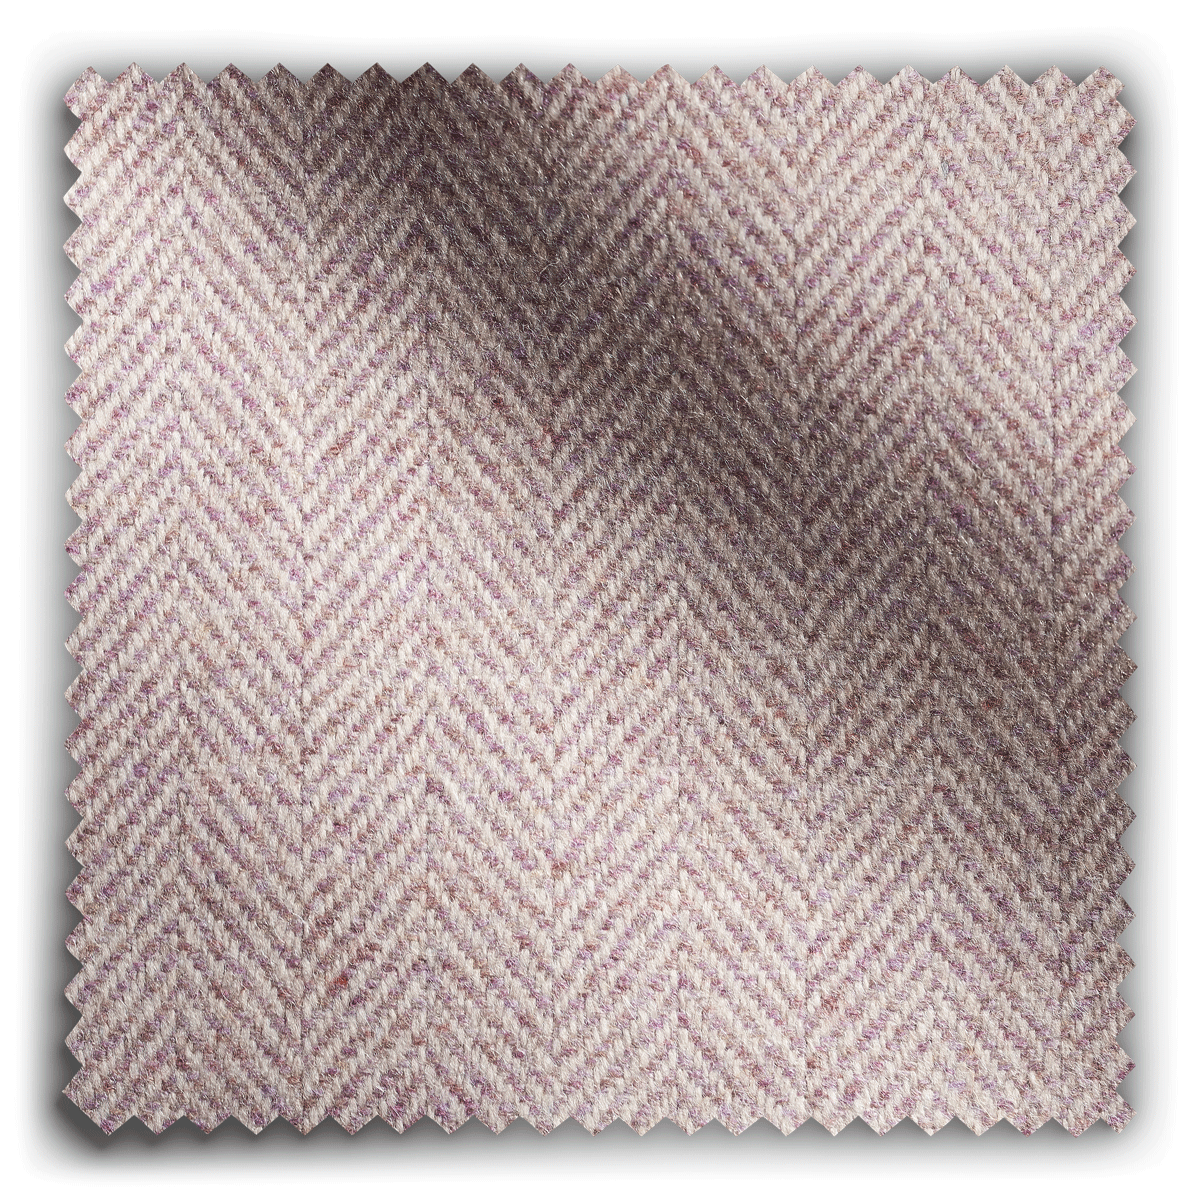 Image of Relaxed Herringbone Soft Heather fabric